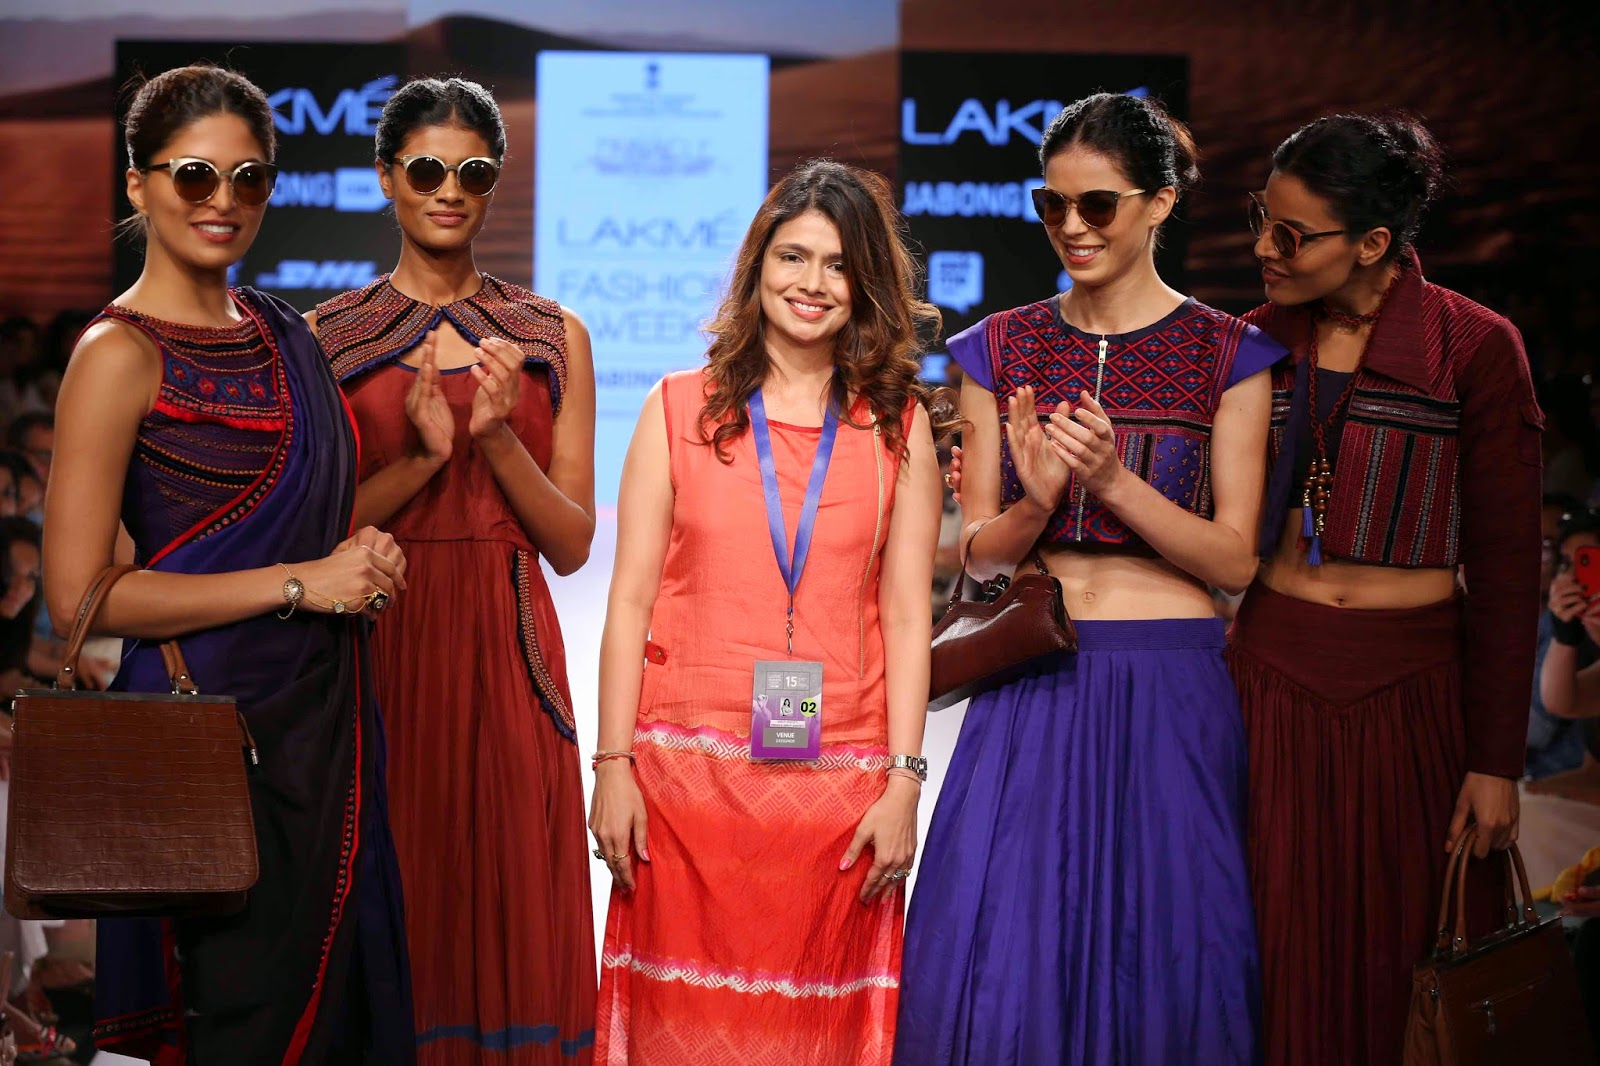 http://aquaintperspective.blogspot.in/,LIFW Day 2, Shruti Sancheti